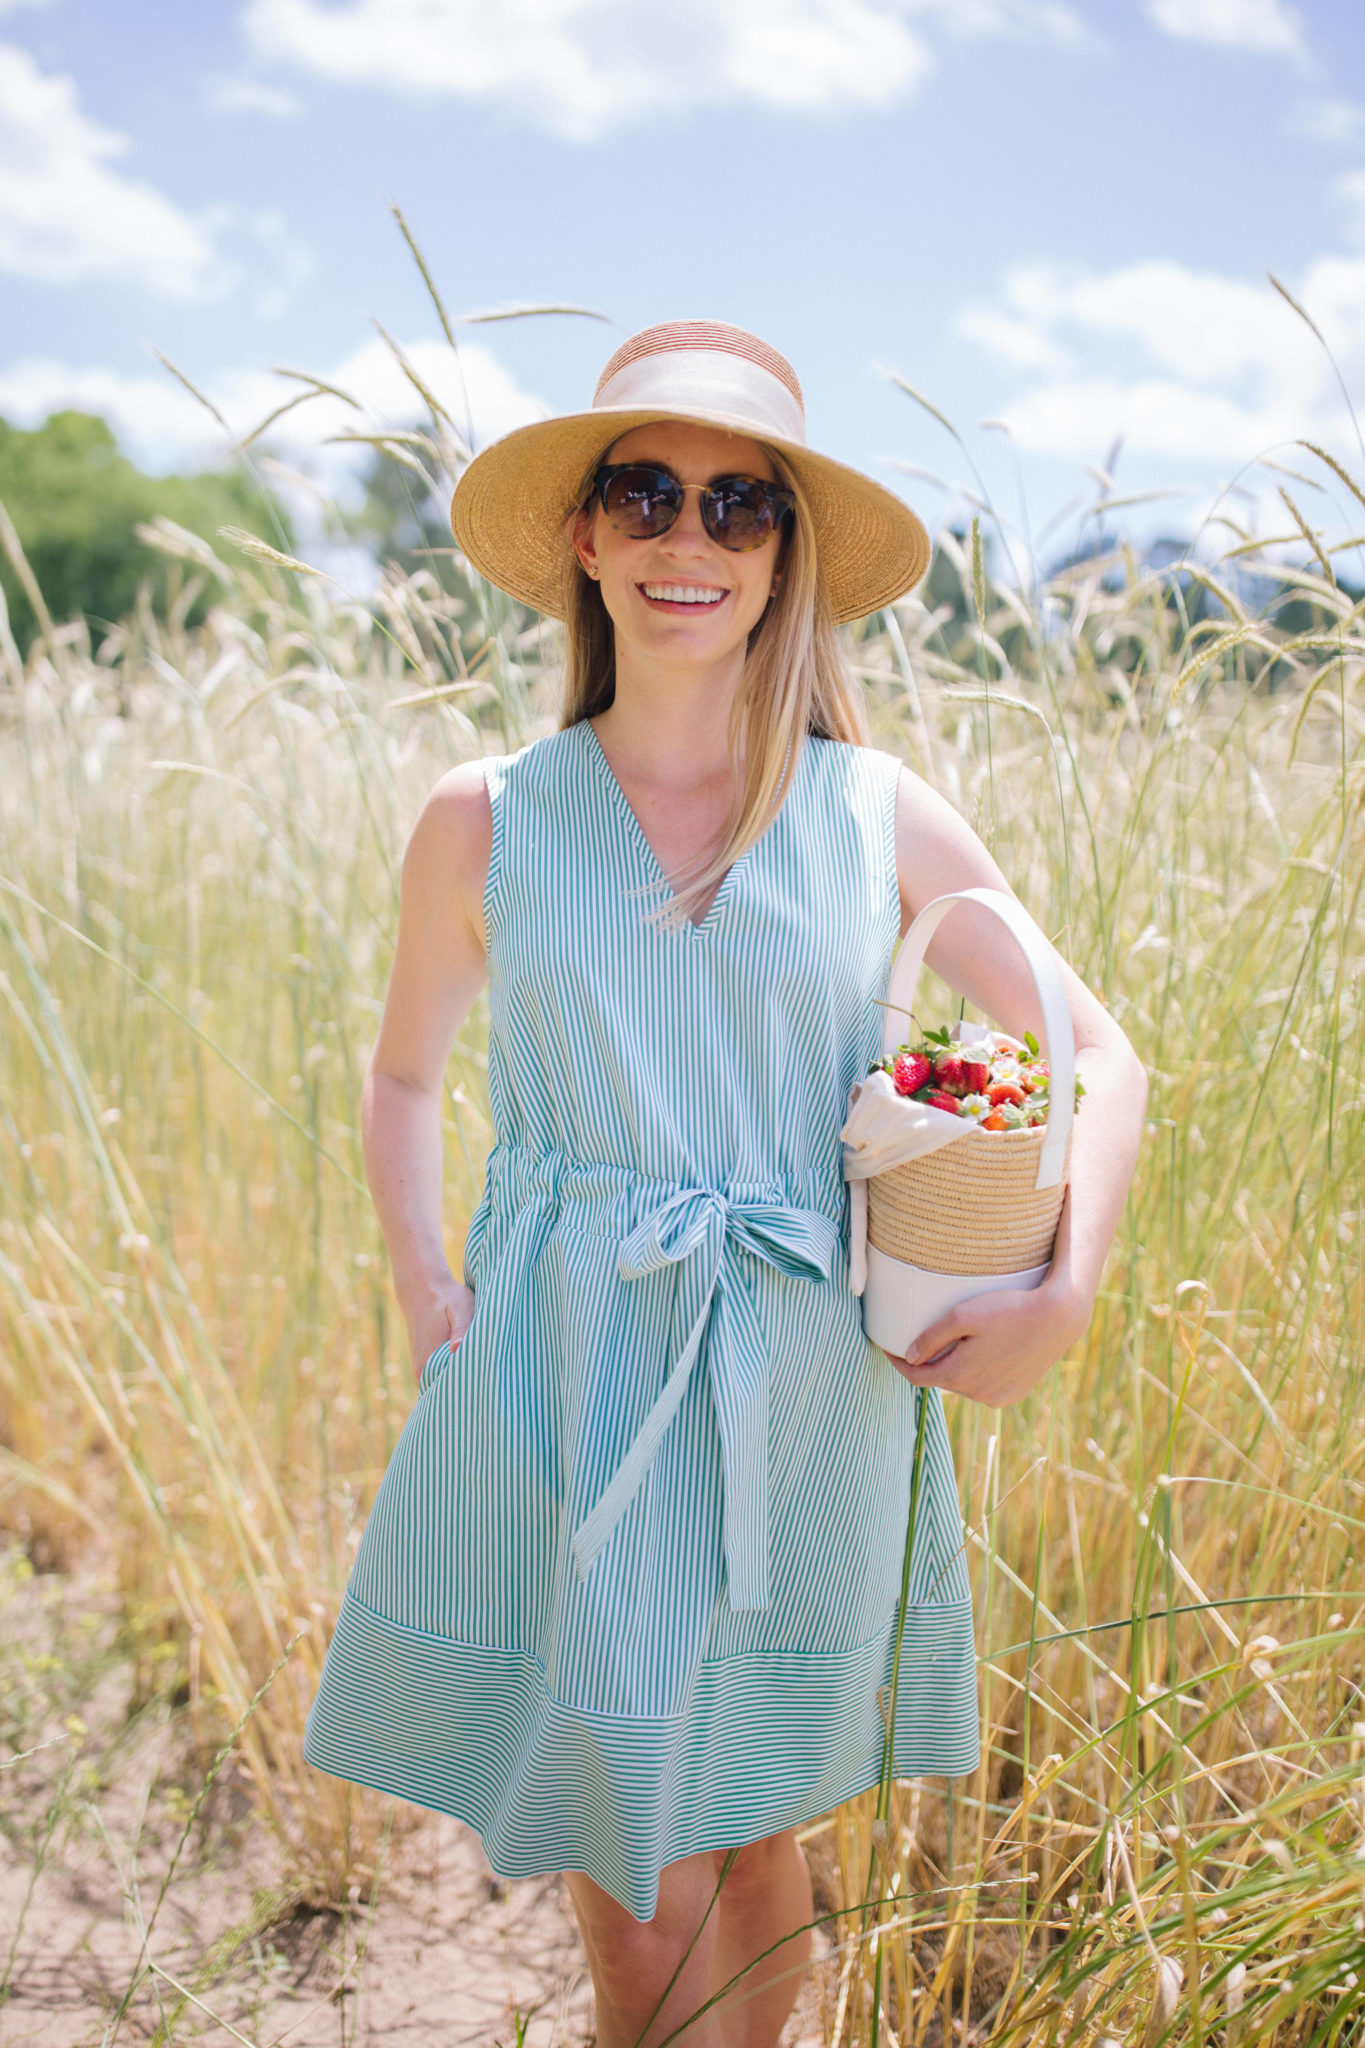 The best social distancing outdoor activies to do in the spring | Rhyme & Reason